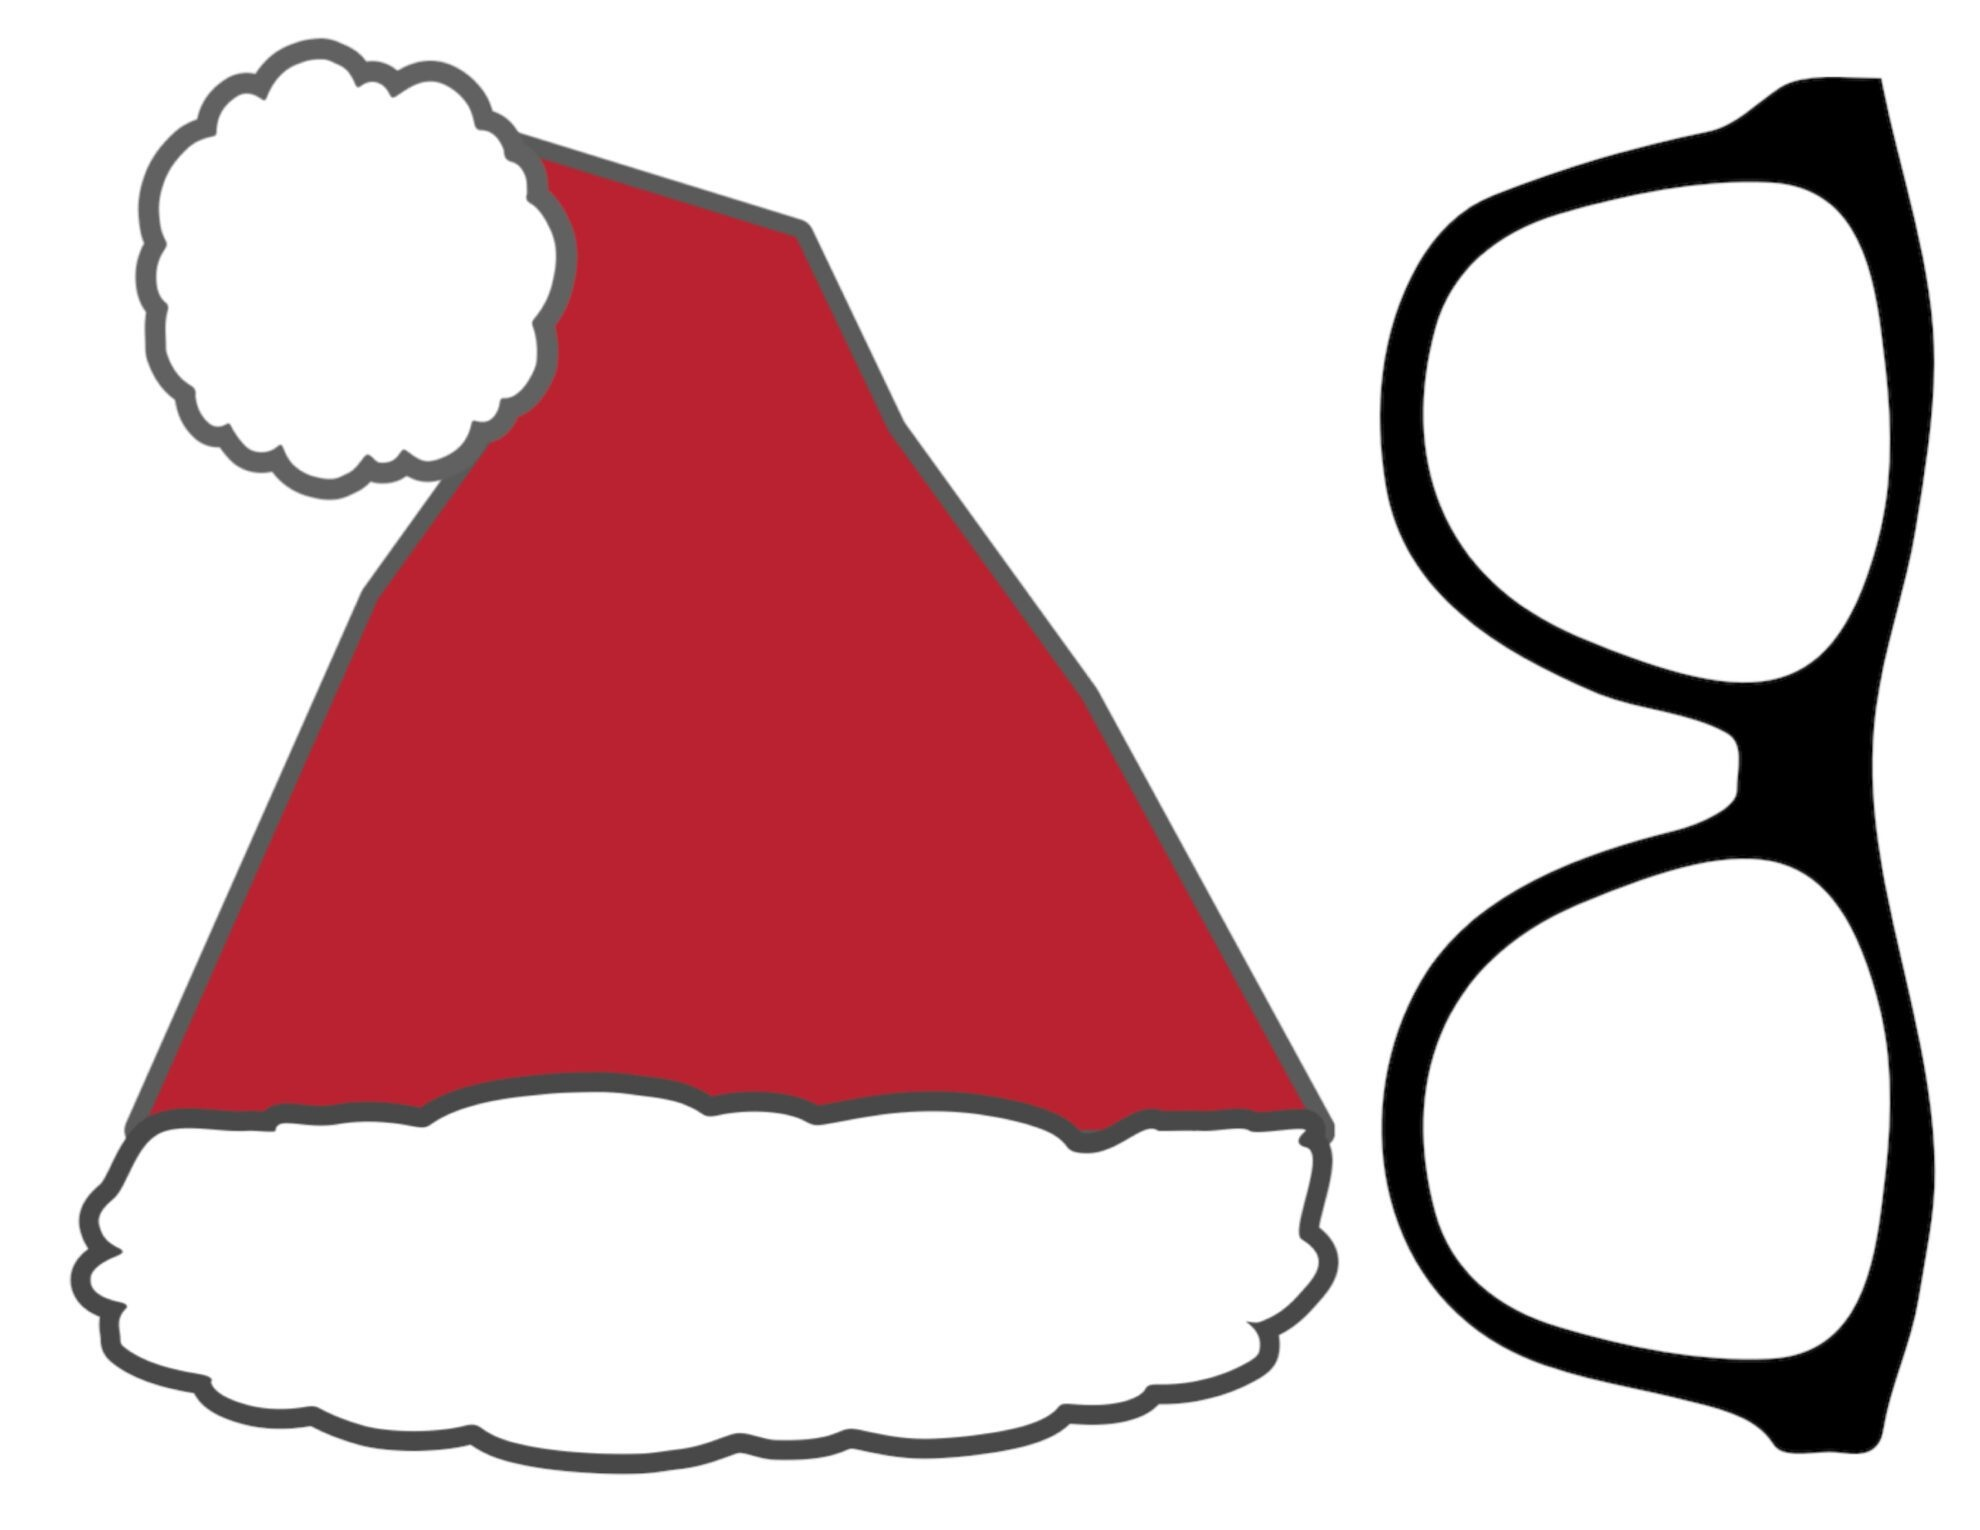 Free Christmas Photo Booth Props Printable - Paper Trail Design - Free Printable Christmas Photo Booth Props